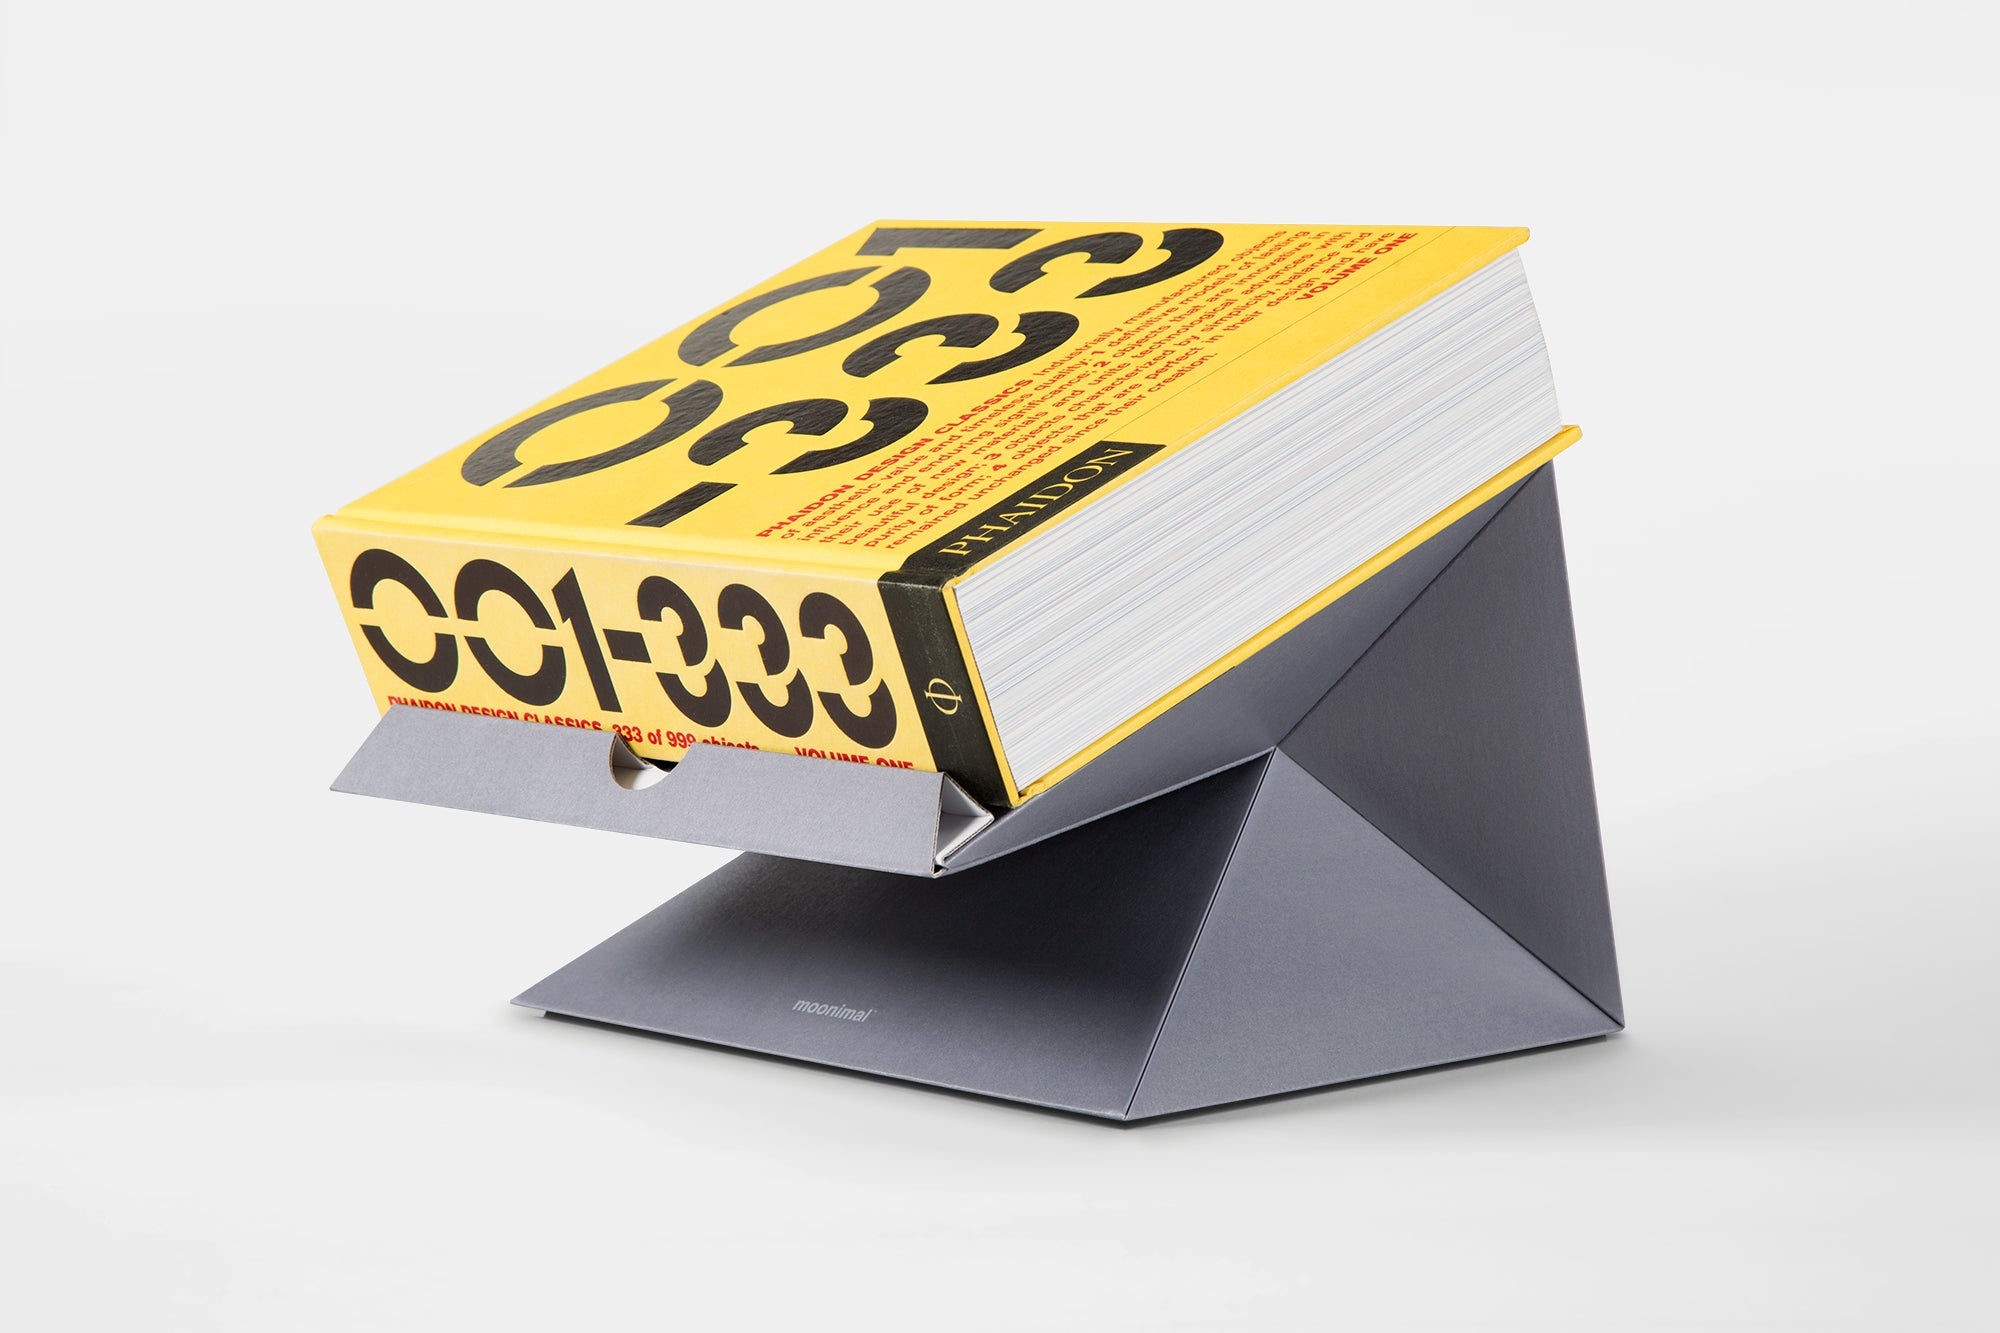 Origami laptop stand Phaidon Design book